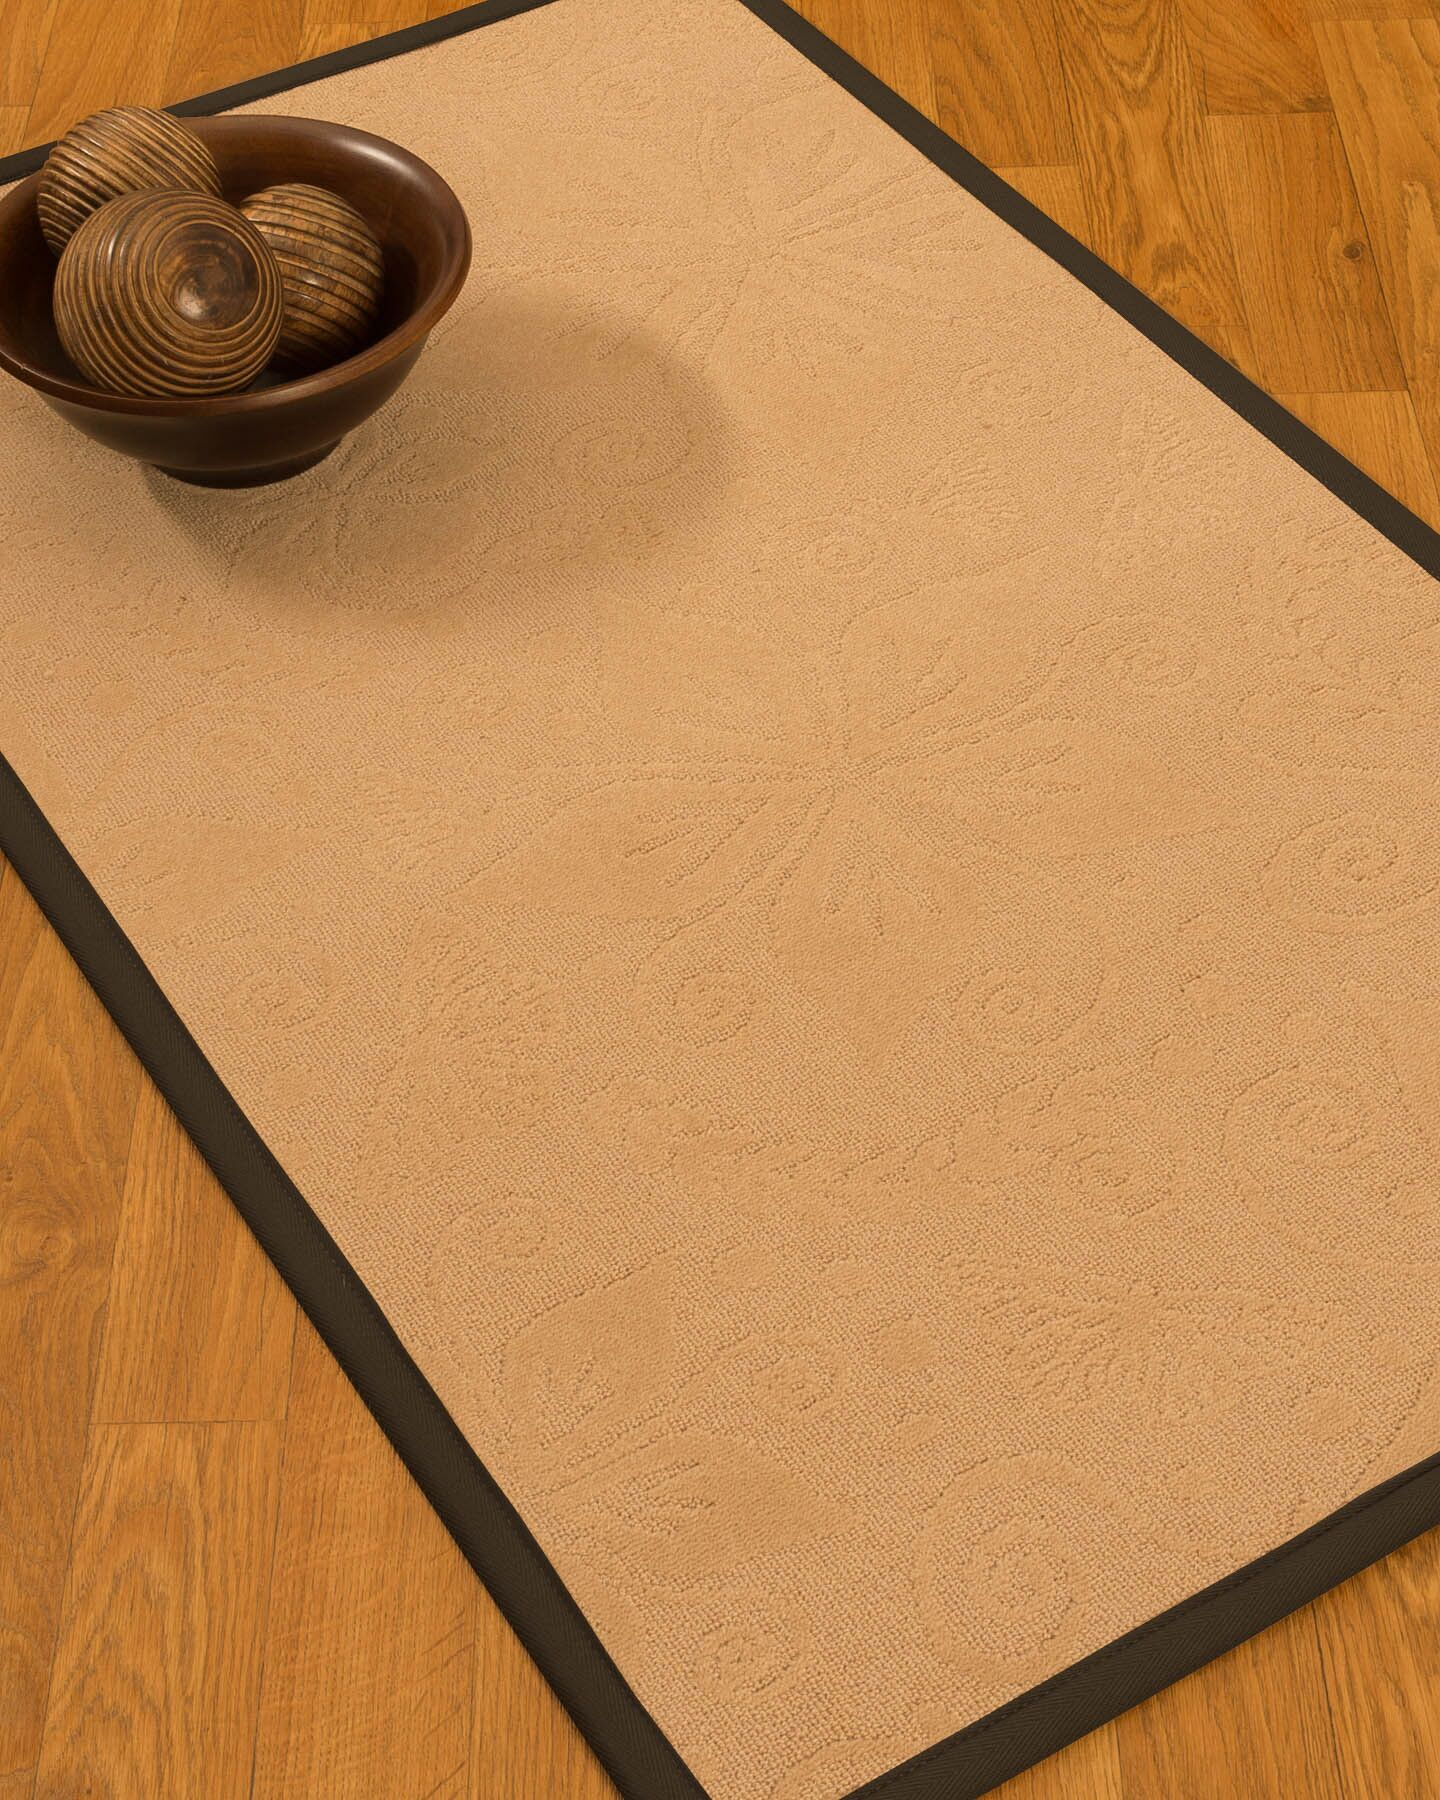 Vanmeter Border Hand-Woven Wool Beige/Fudge Area Rug Rug Pad Included: No, Rug Size: Runner 2'6